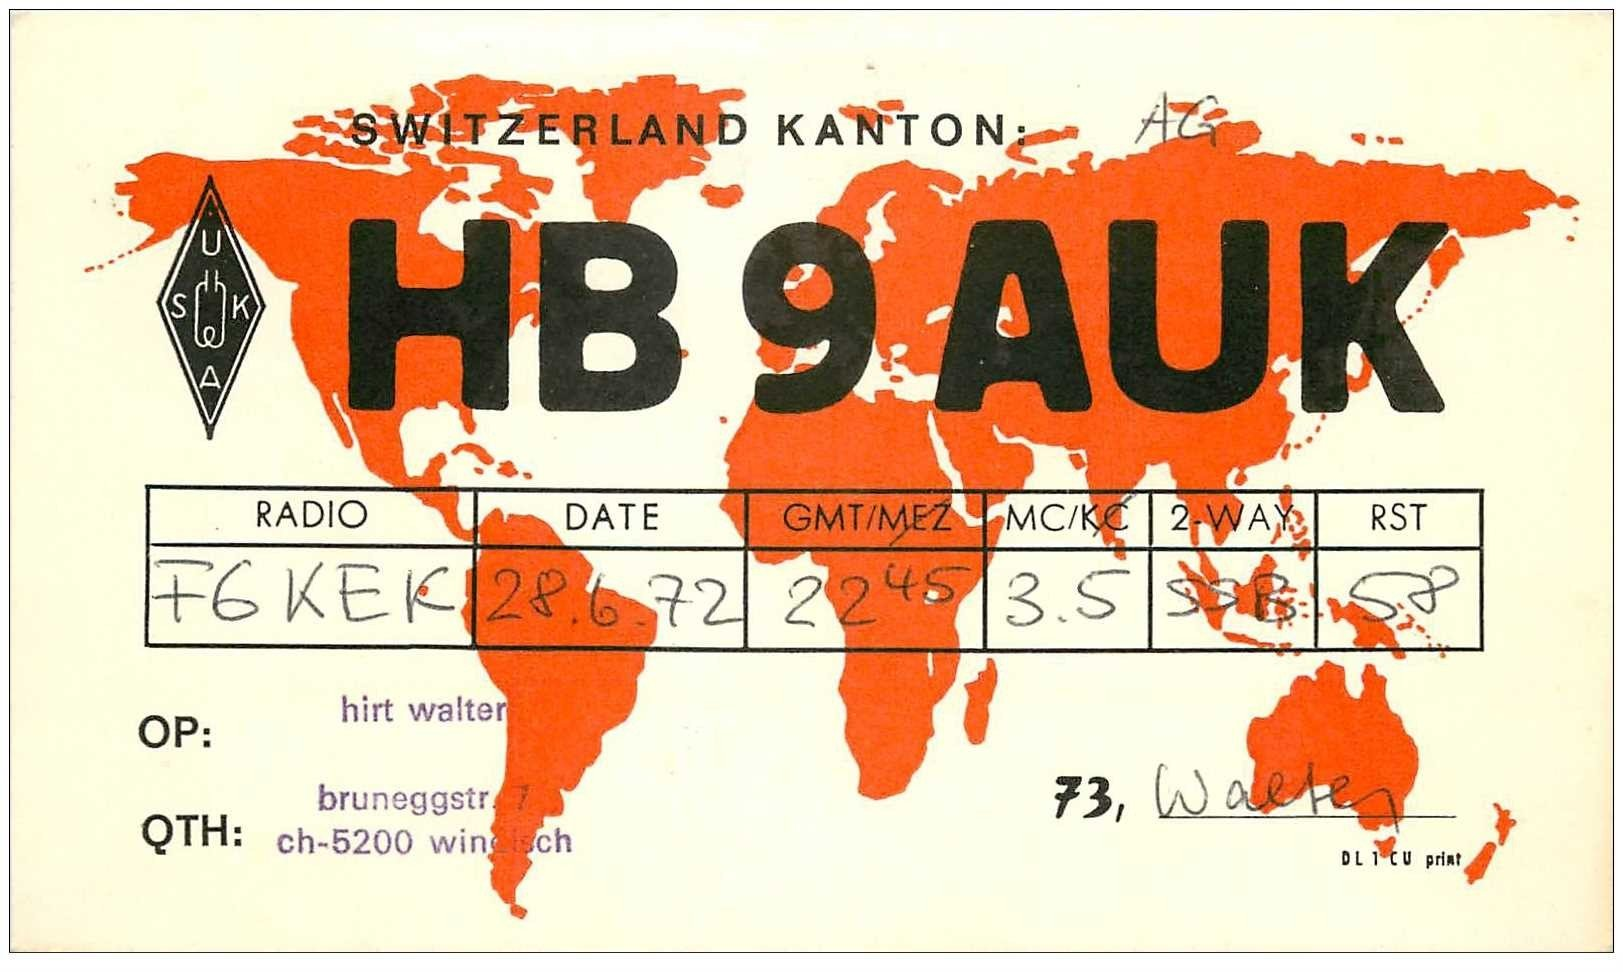 carte postale ancienne CARTE RADIO QSL. Switzeland Kanton 1972